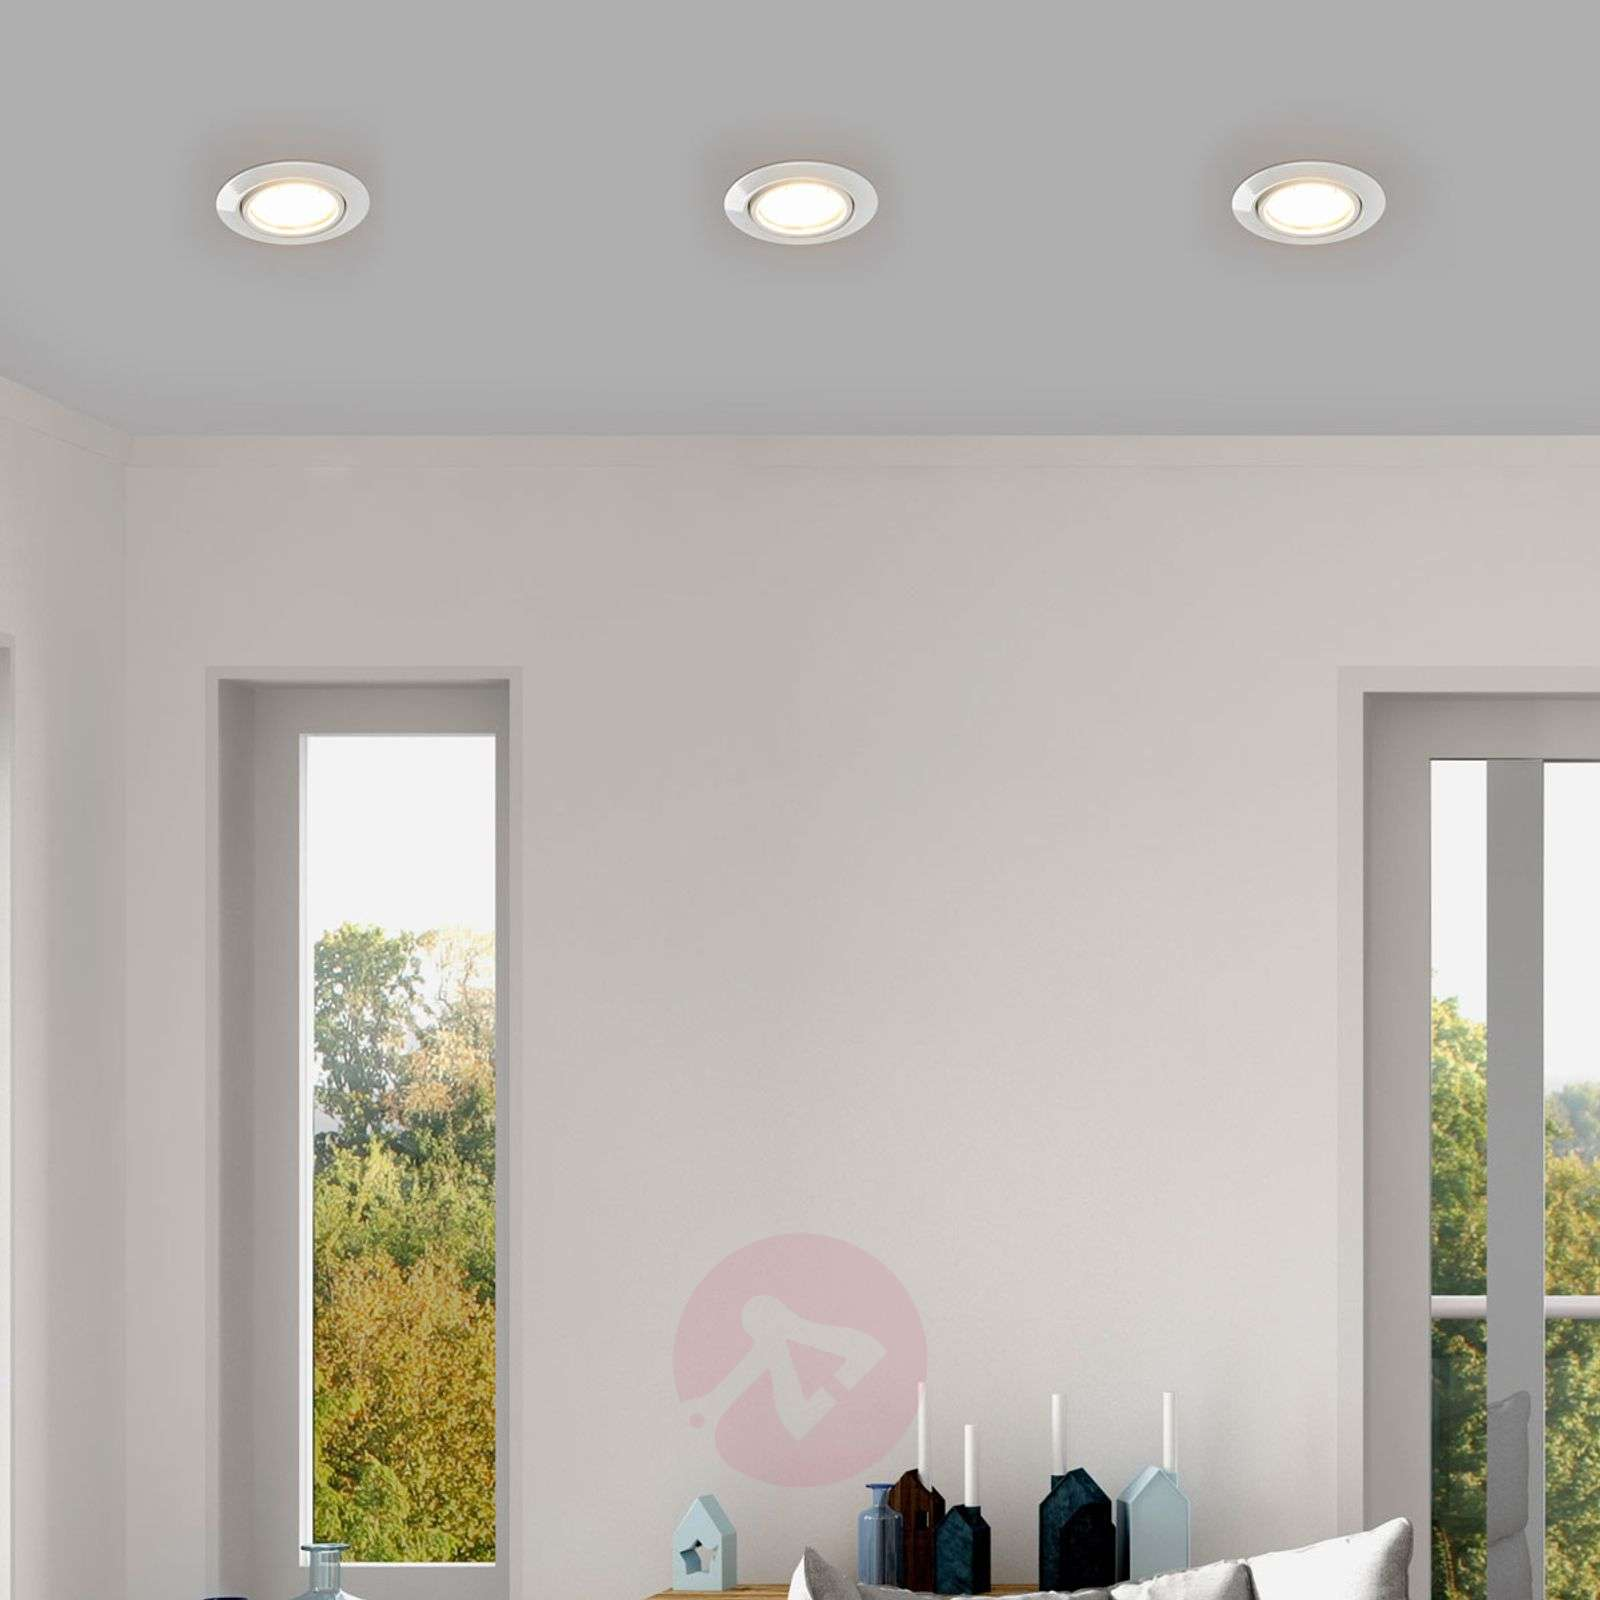 White Juna LED recessed lights, set of 3 Easydim-1558080-02